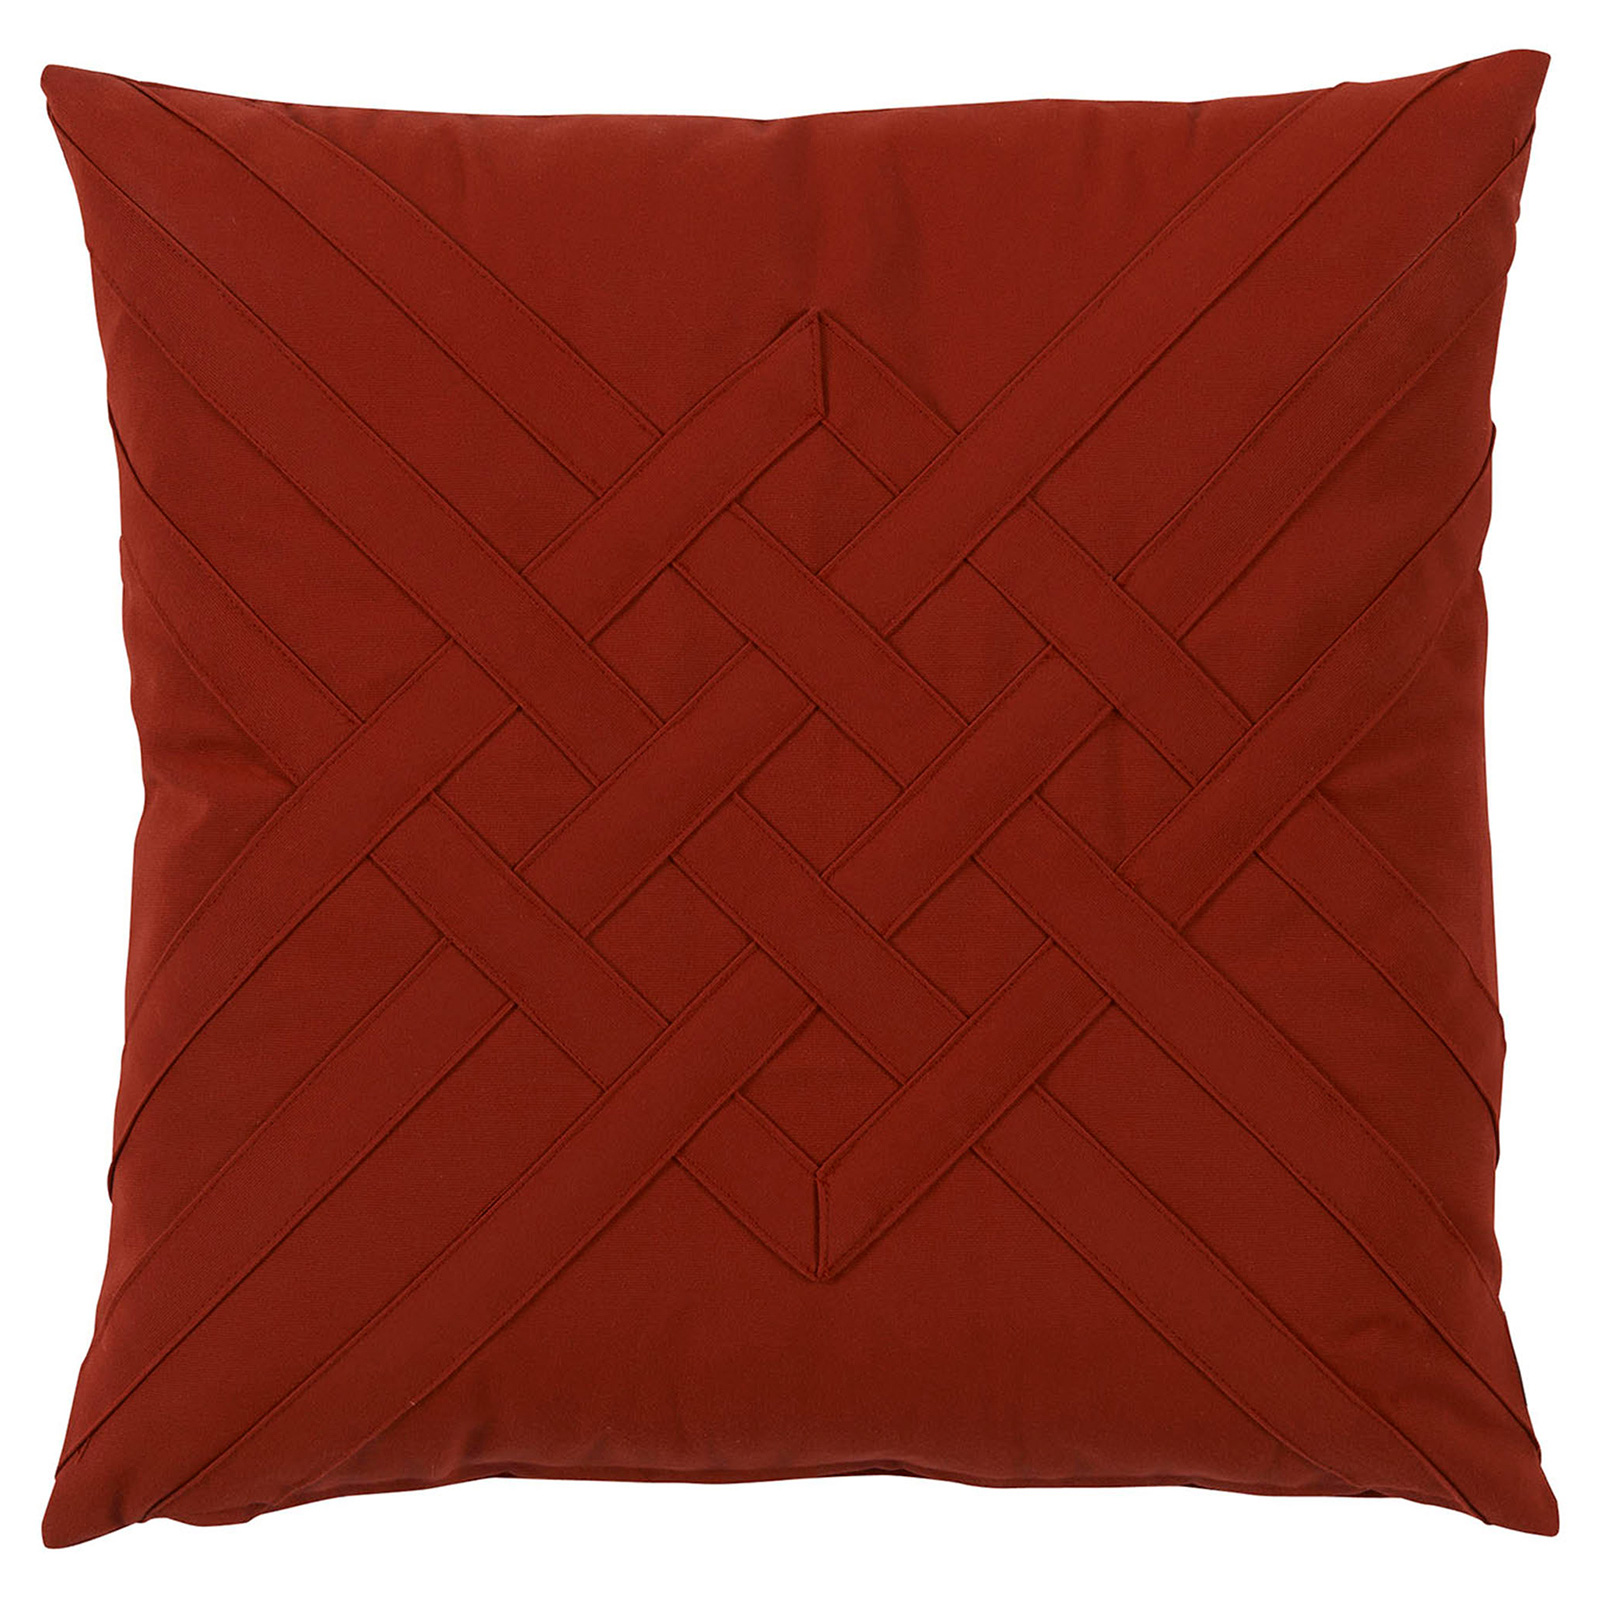 Will Modern Red Lattice Weave Outdoor Pillow - 20x20